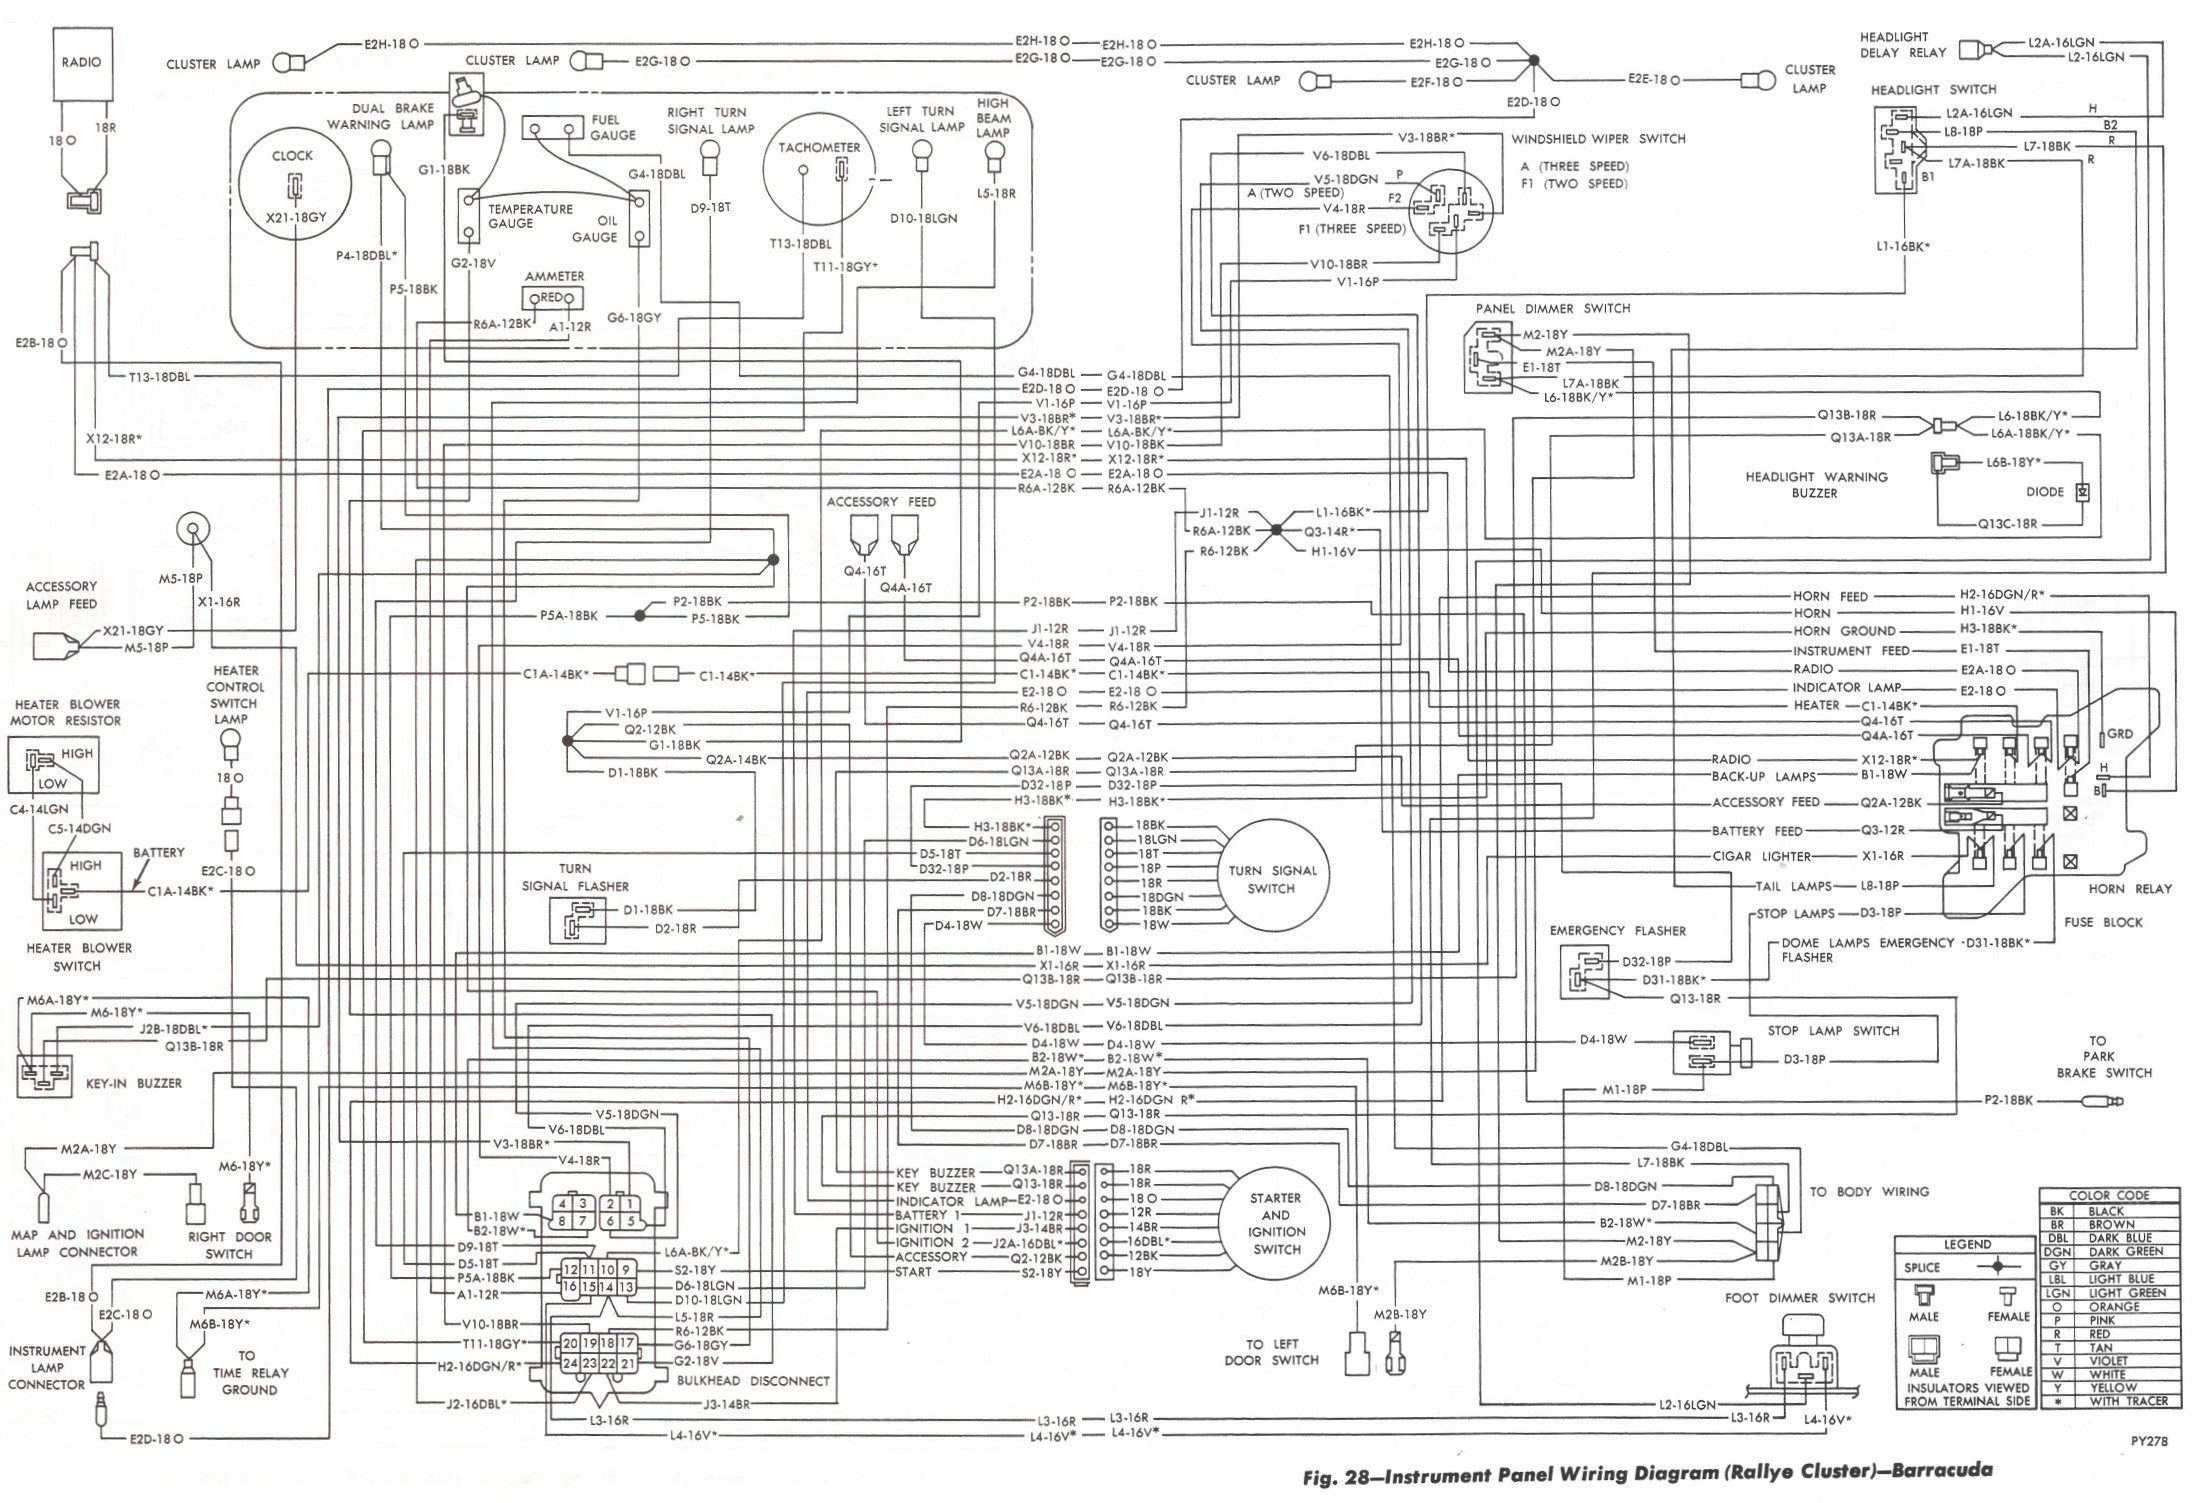 1970 cuda engine wiring diagram 1 smo zionsnowboards de \u2022wiring diagram 73 cuda wiring diagram data rh 17 qnk motorik2017 de 1970 cuda speakers 1970